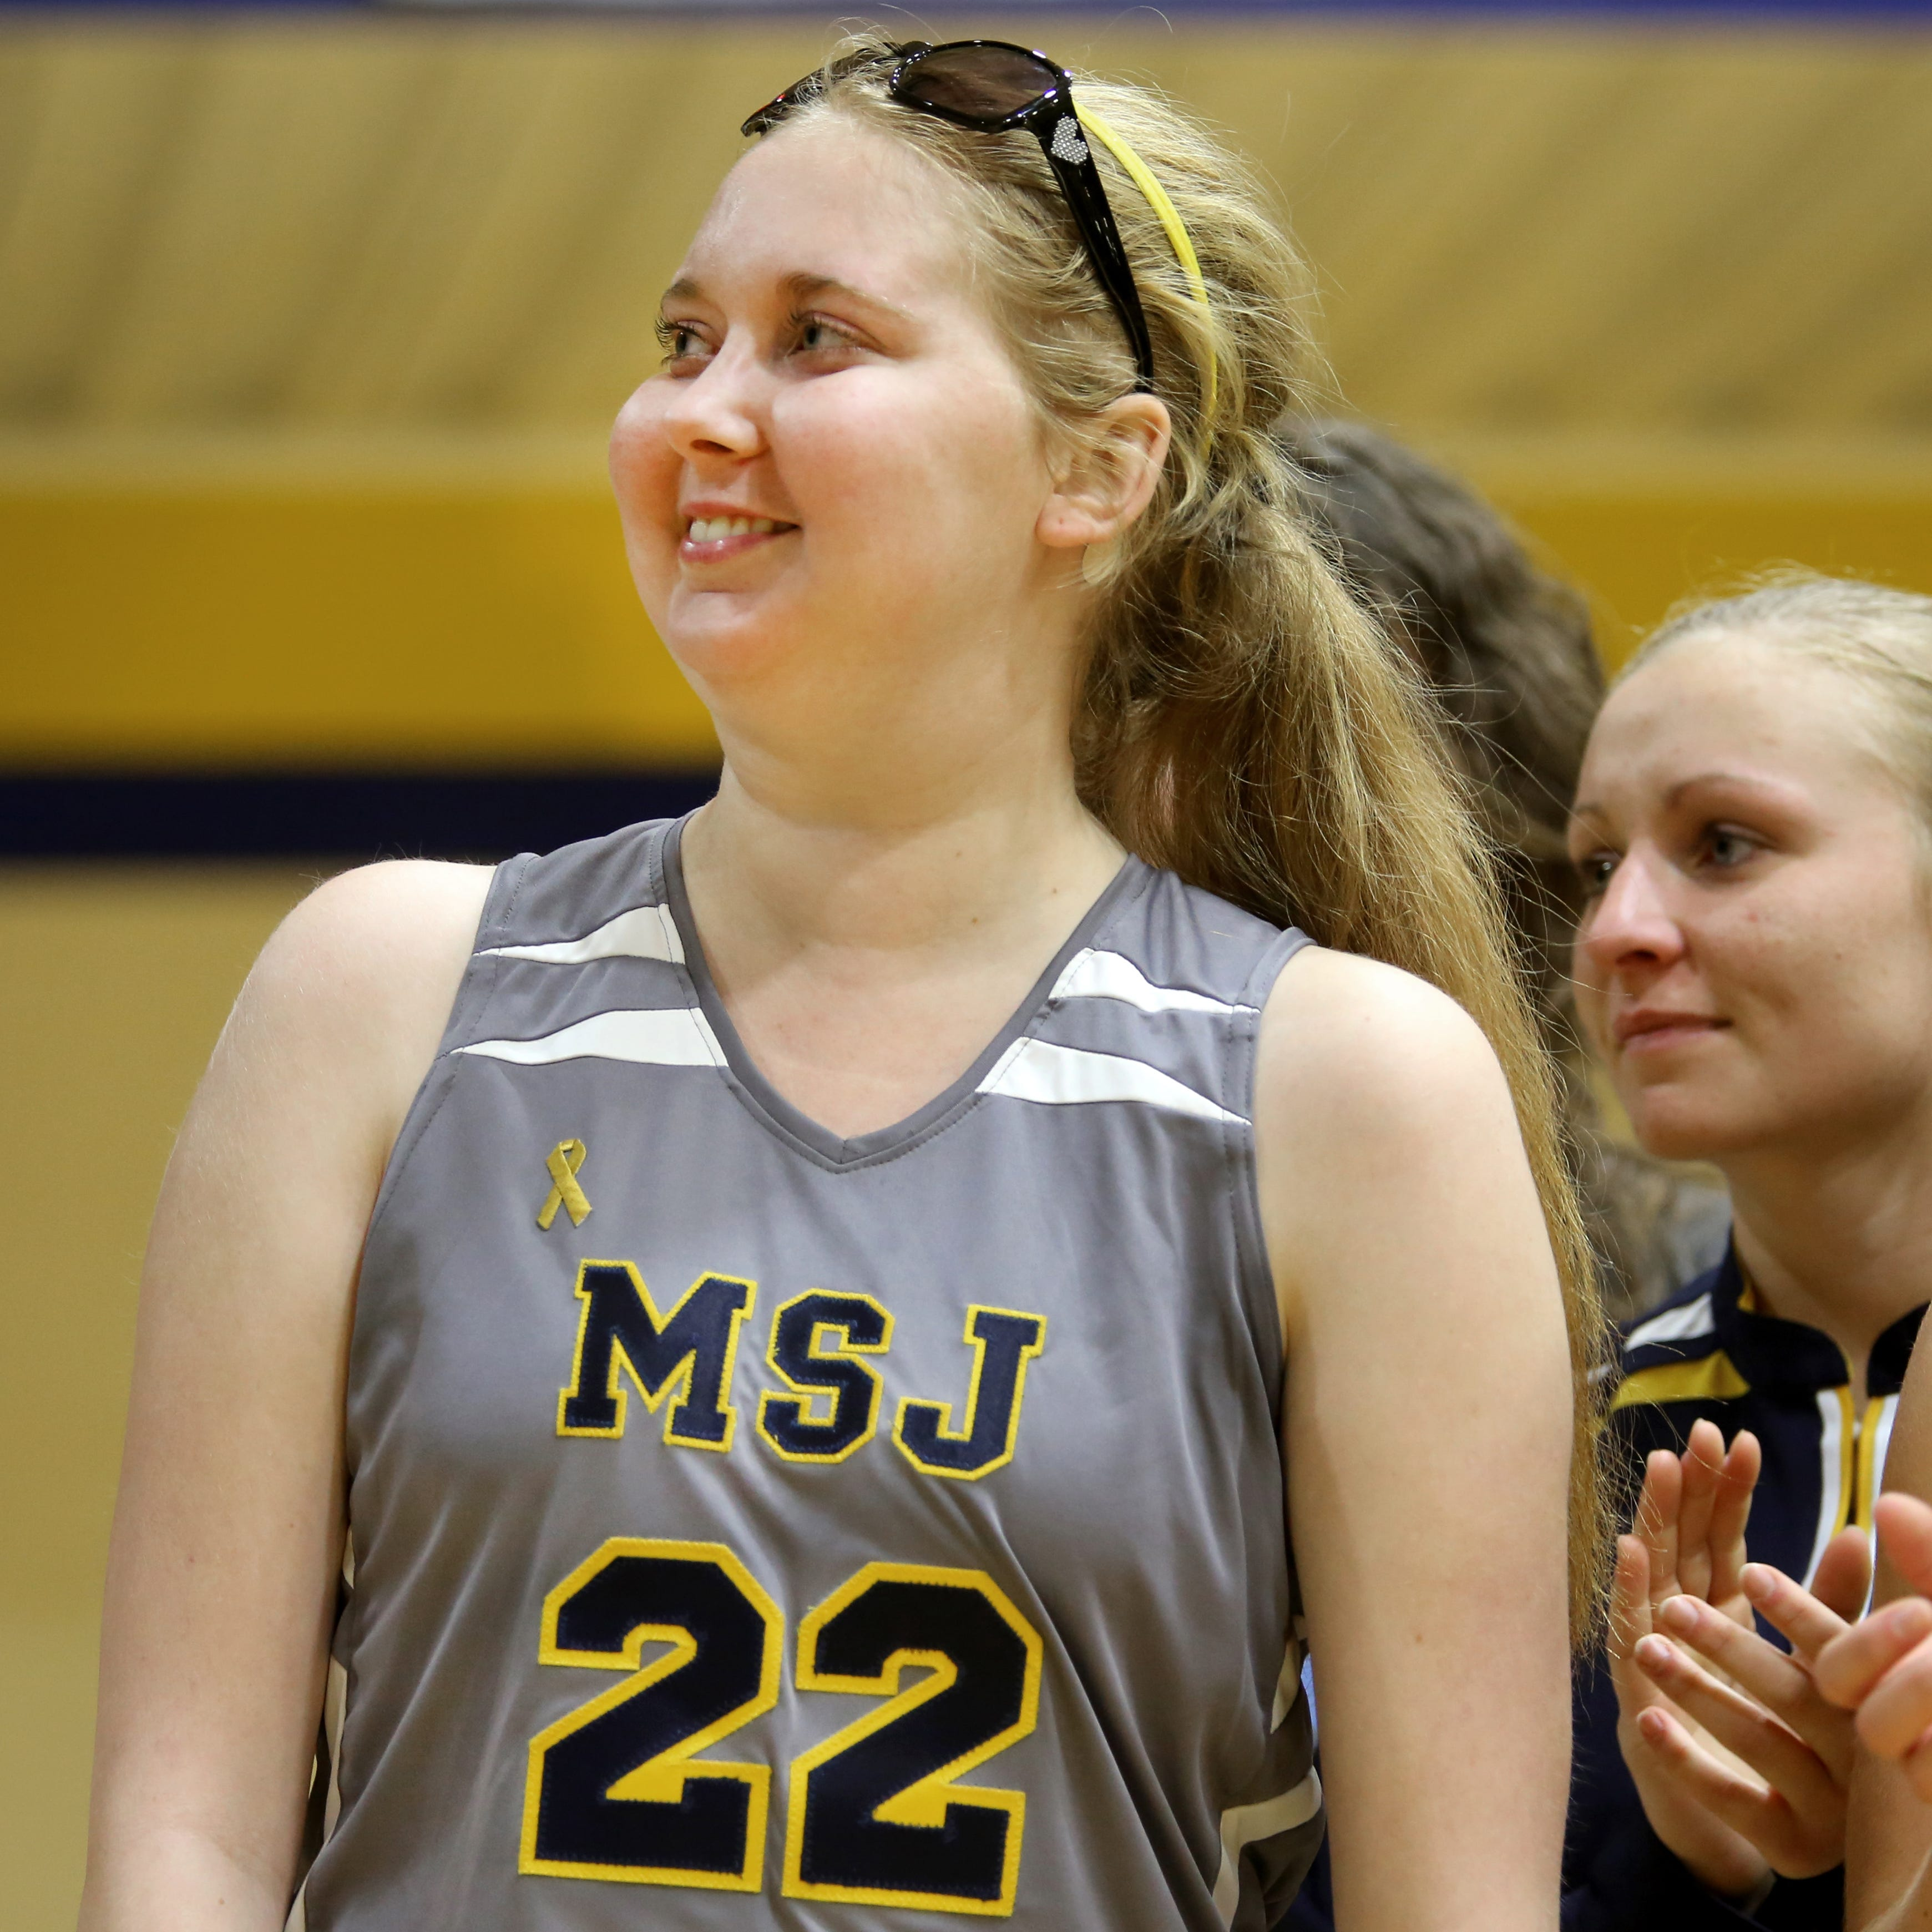 Panera Bread to launch campaign in honor of Lauren Hill